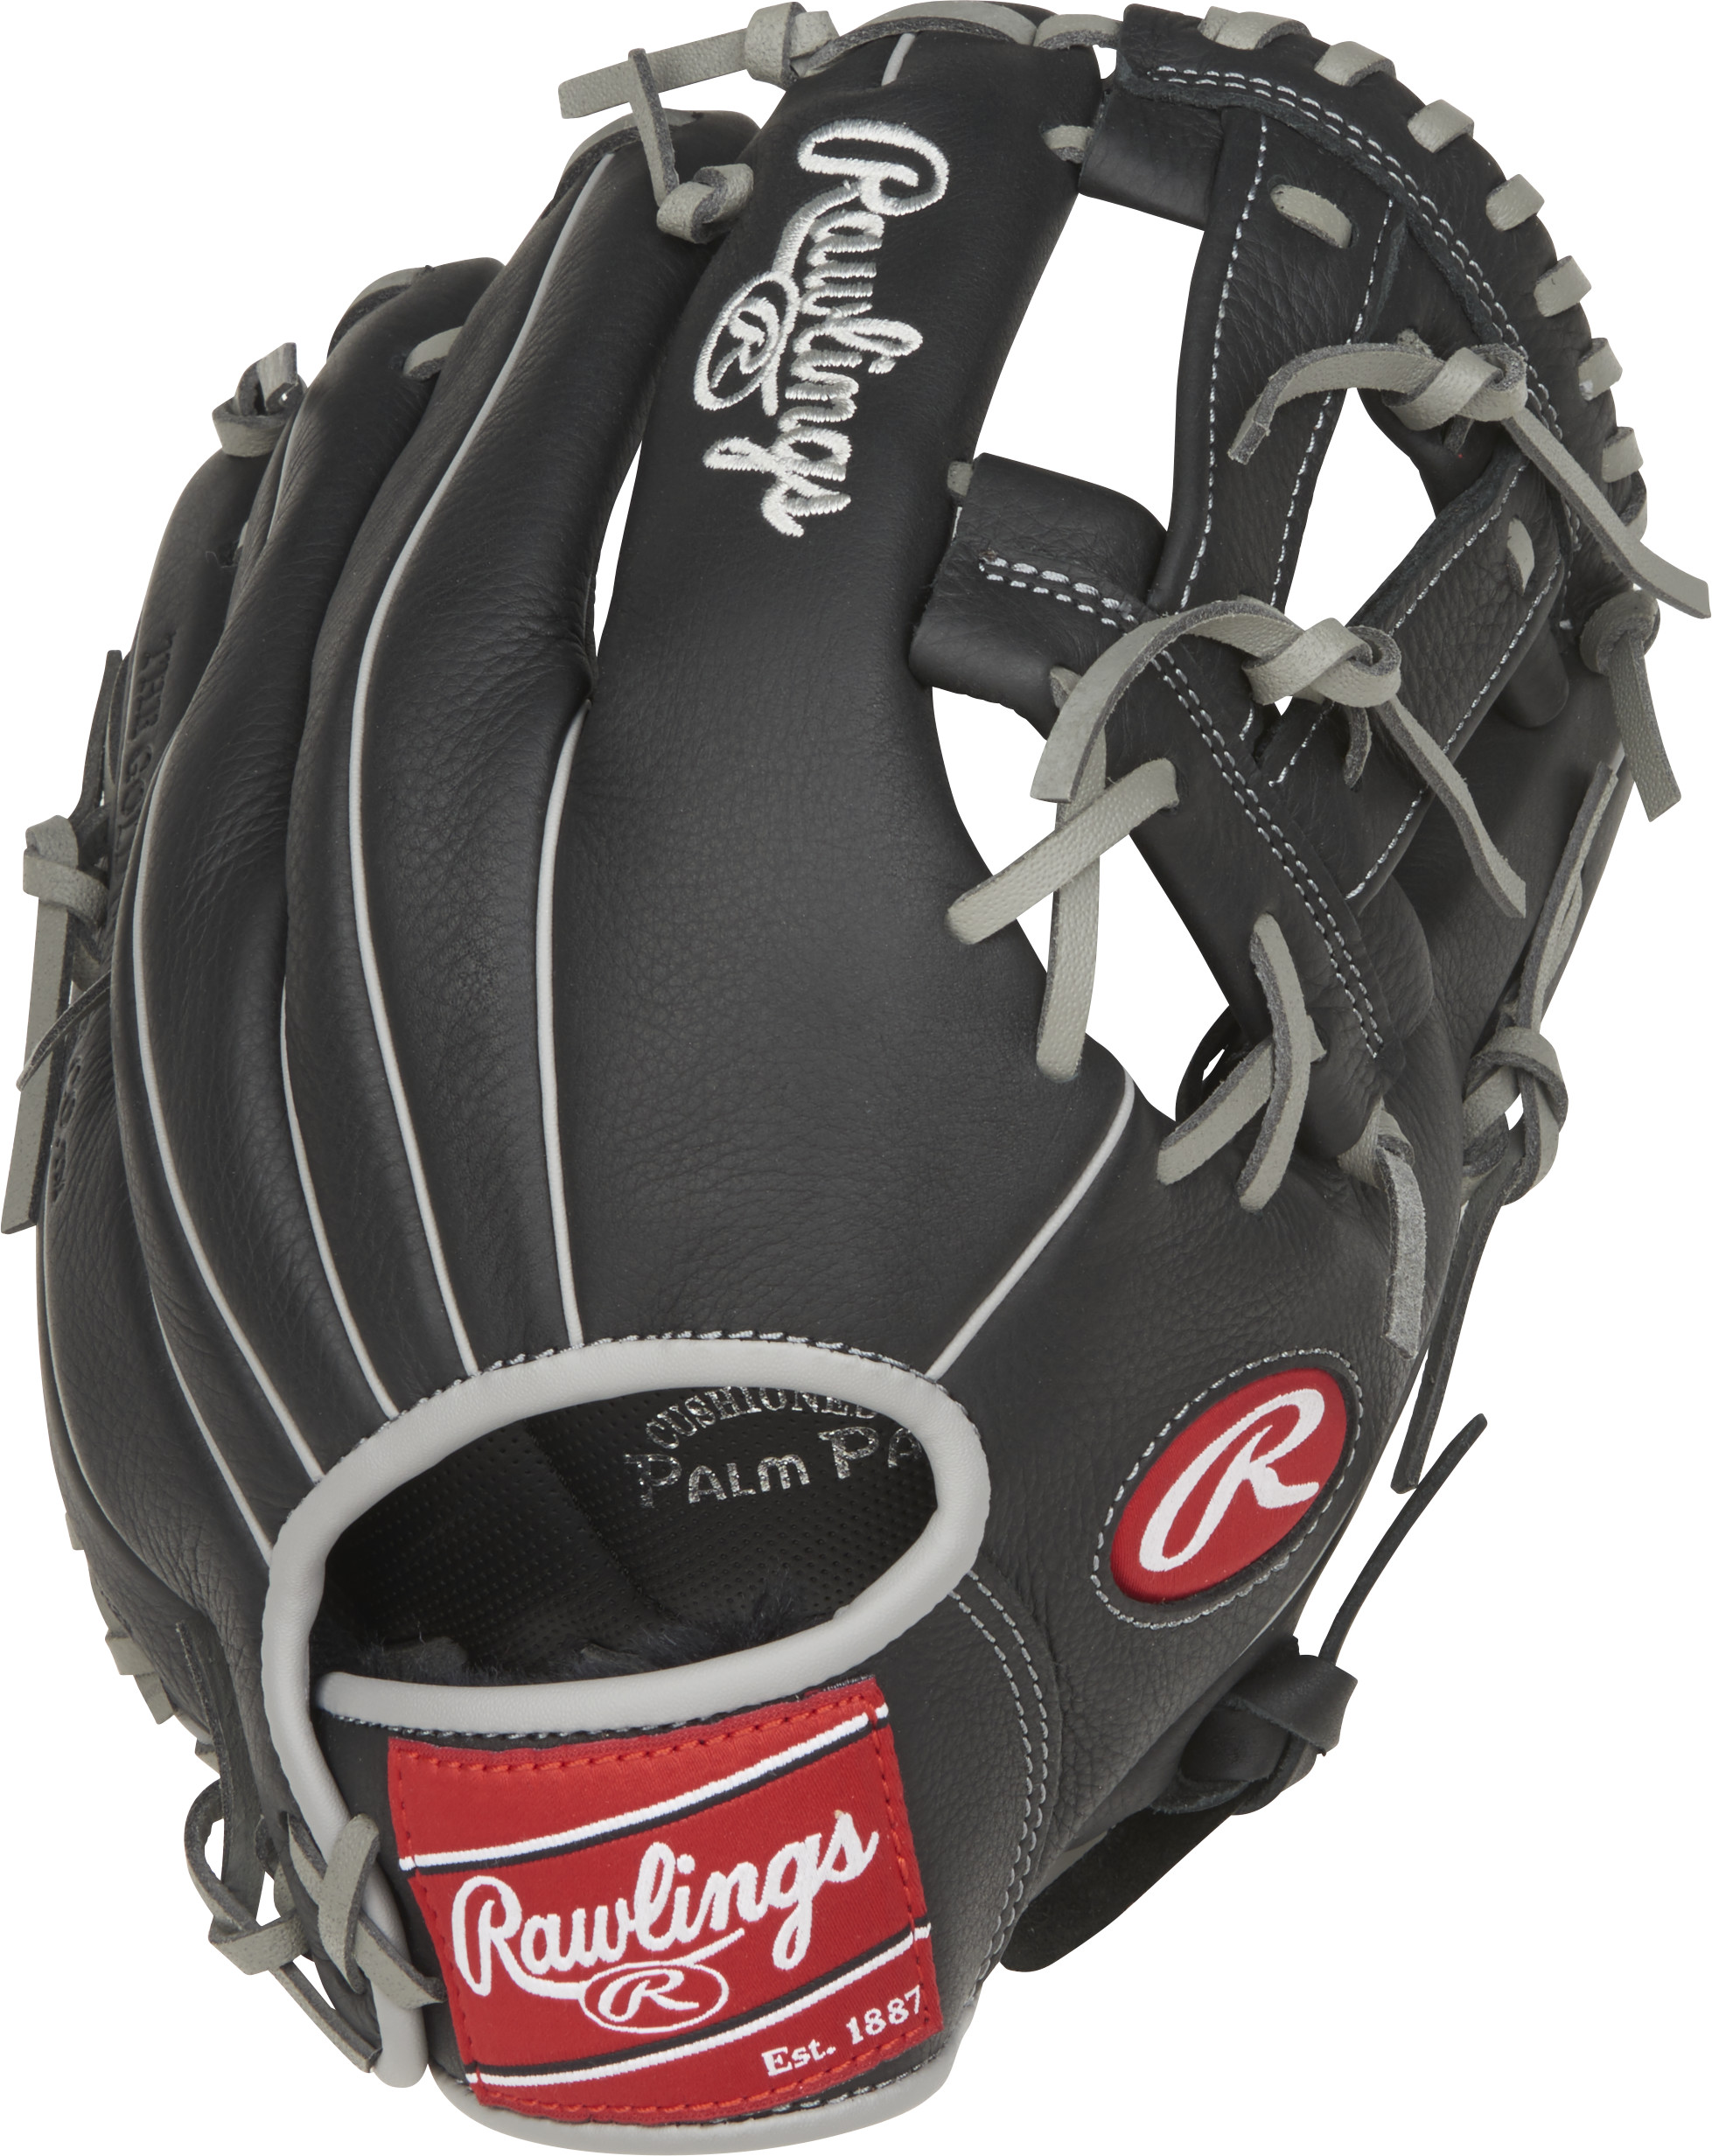 http://www.bestbatdeals.com/images/gloves/rawlings/SPL150MM-2.jpg